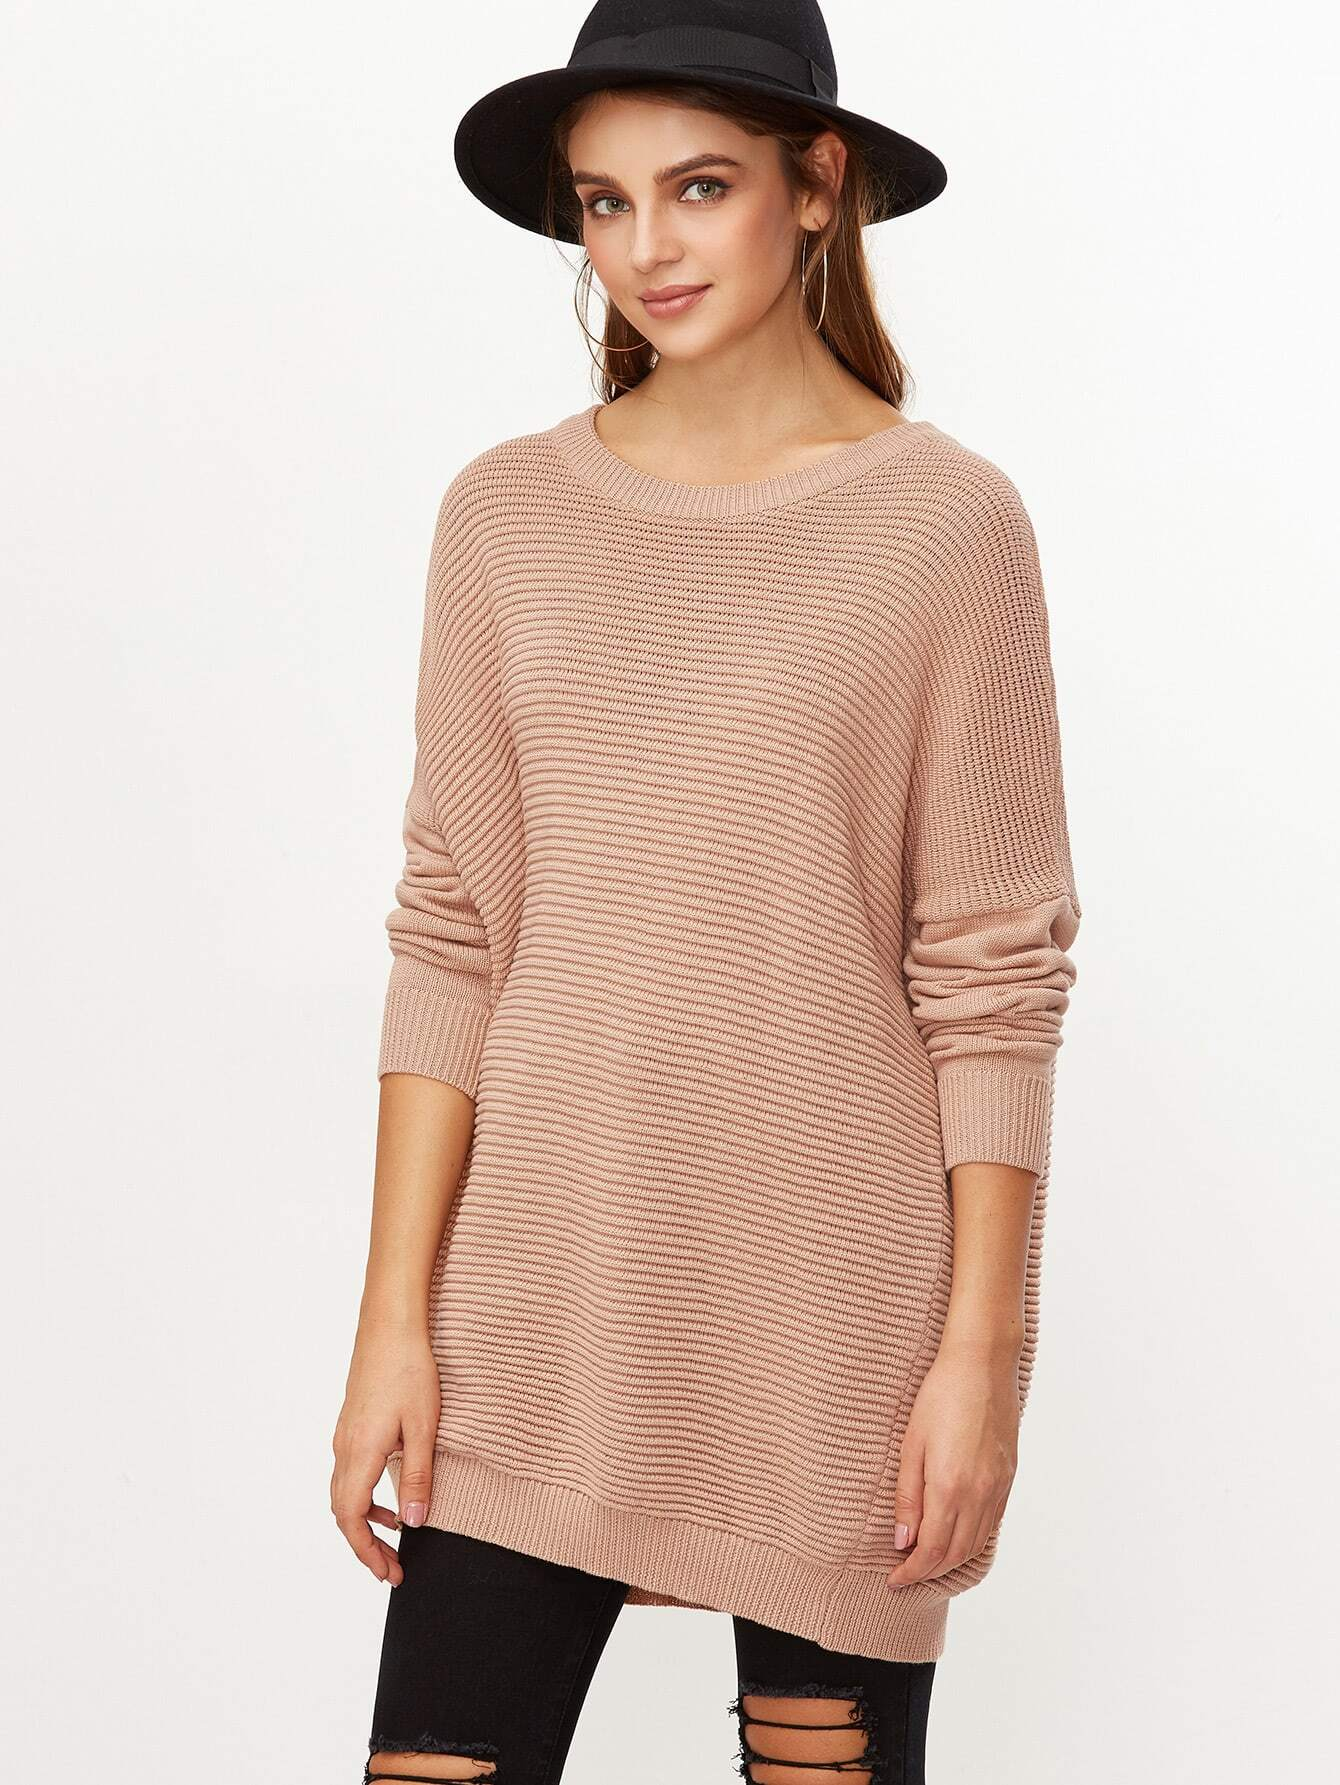 Nude Ribbed Knit Drop Shoulder Oversized Sweater sweater161107466